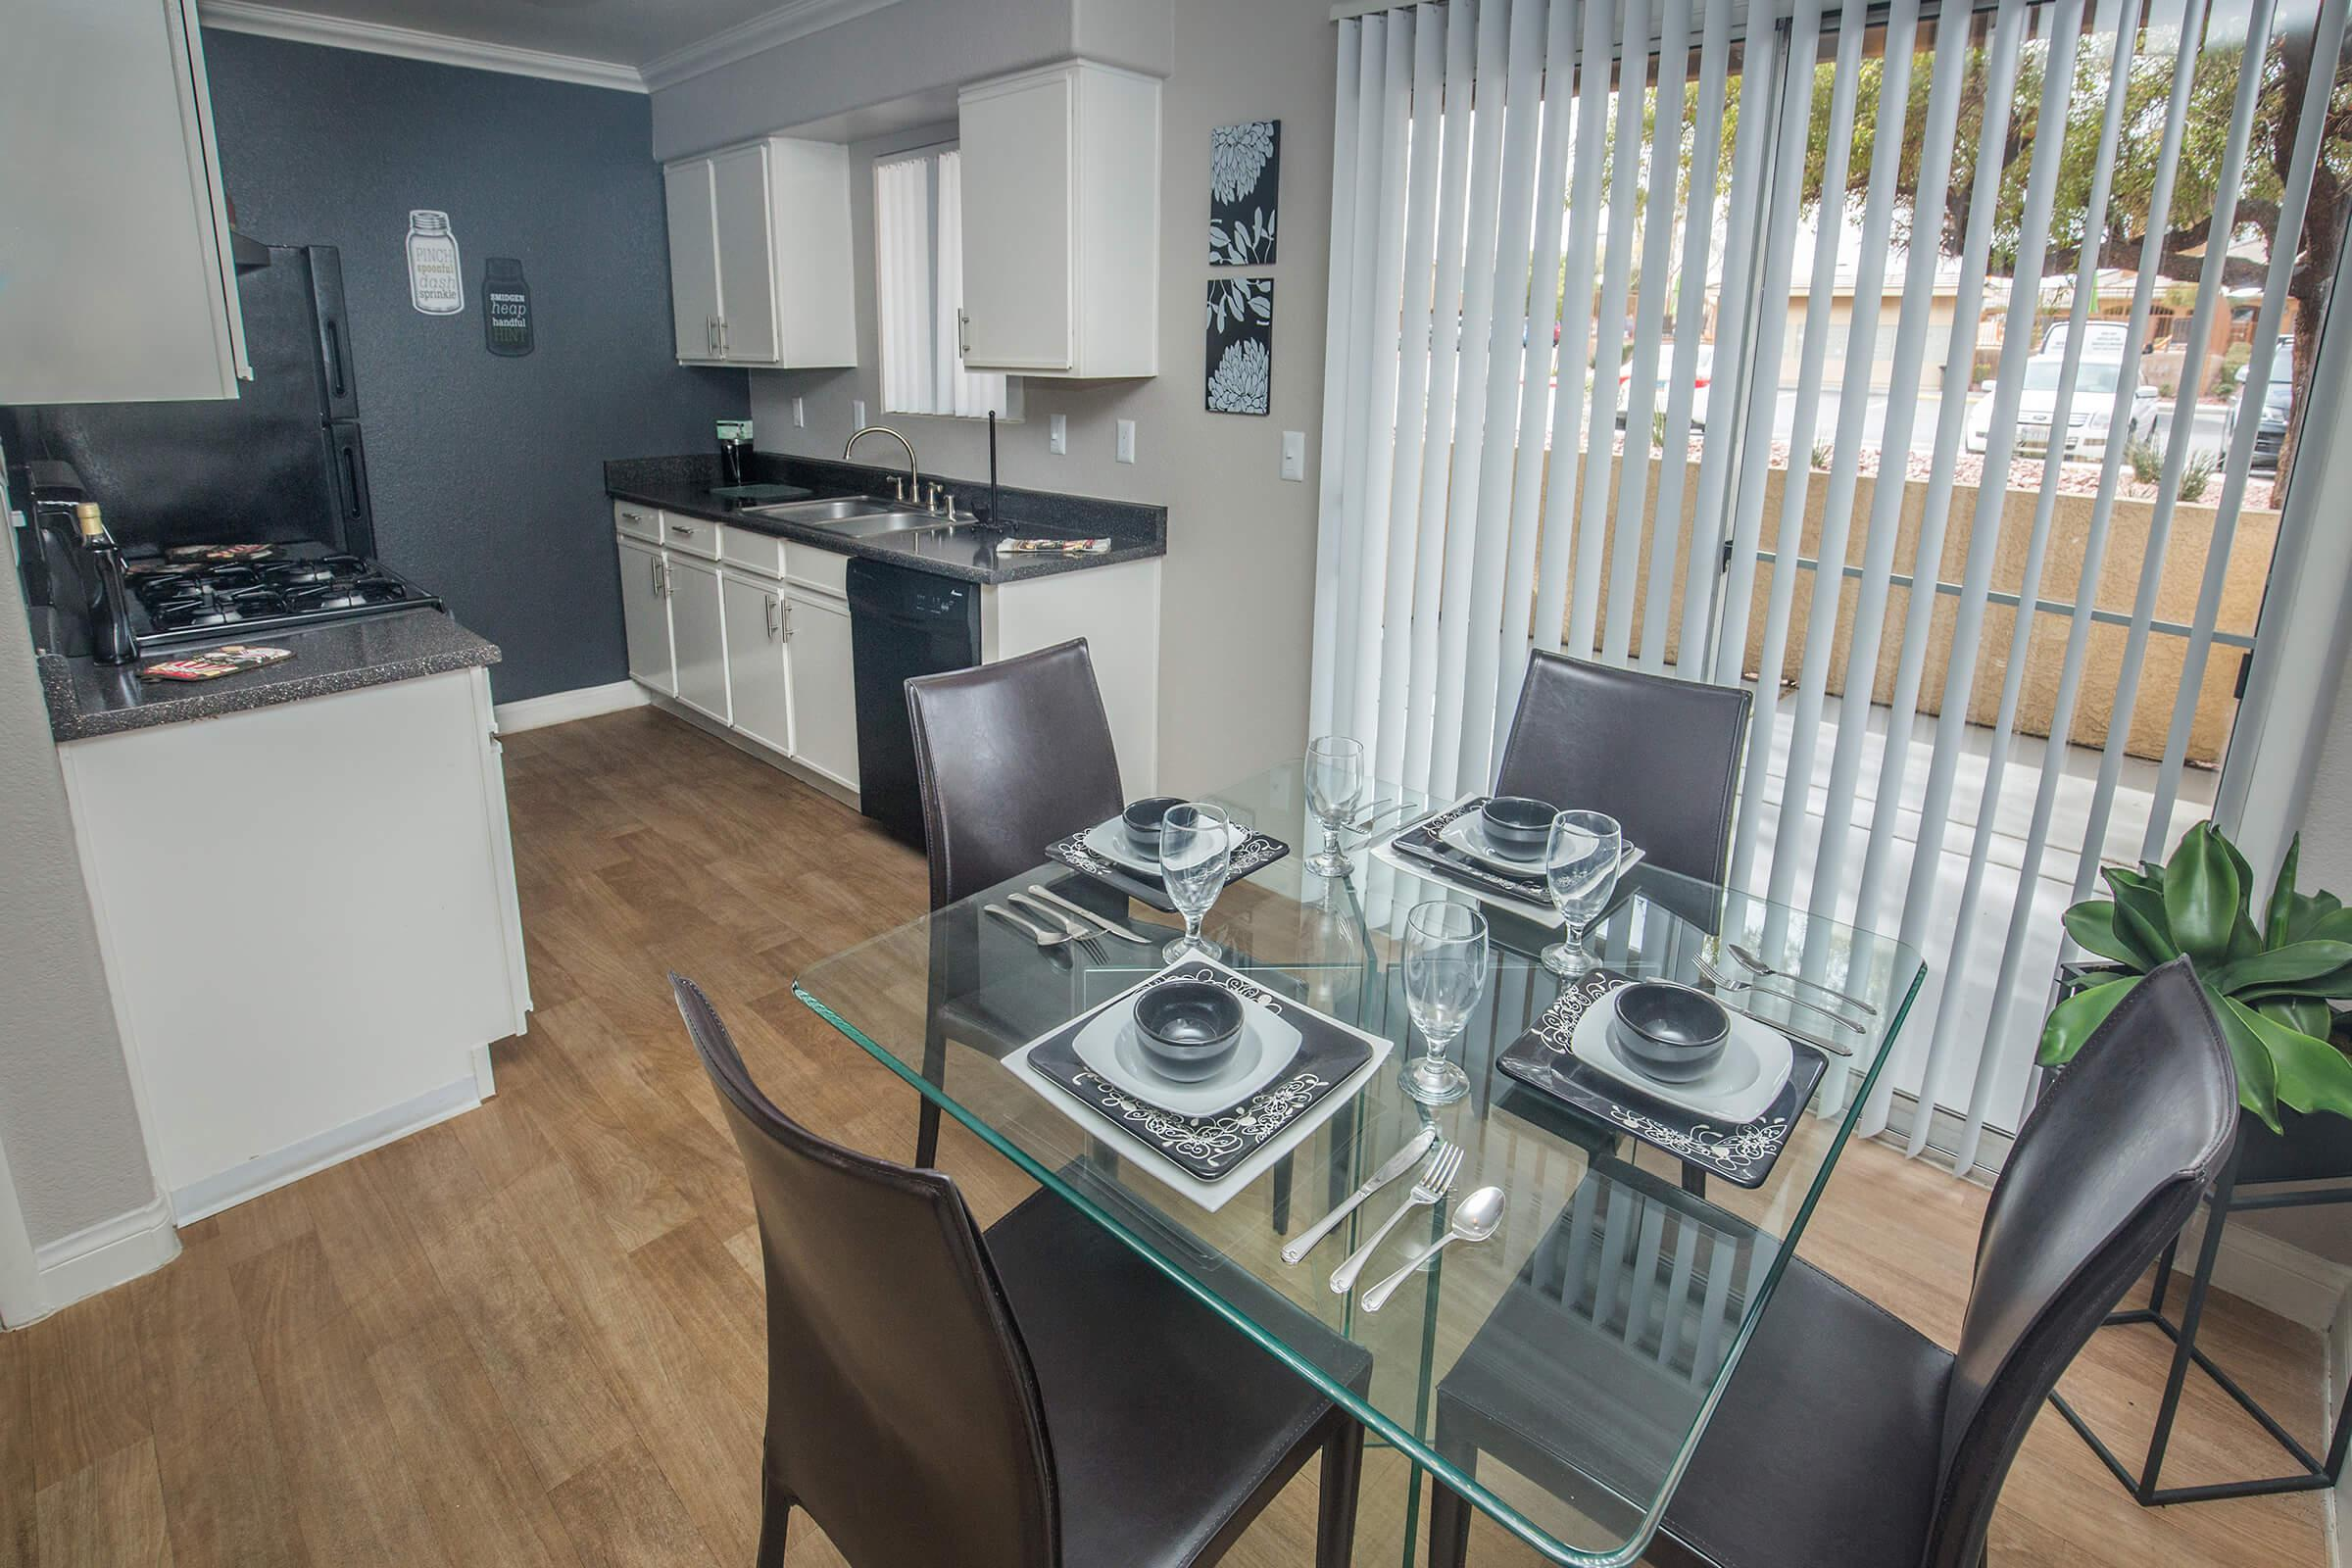 Gourmet Kitchen awaits you here at Siena Townhomes